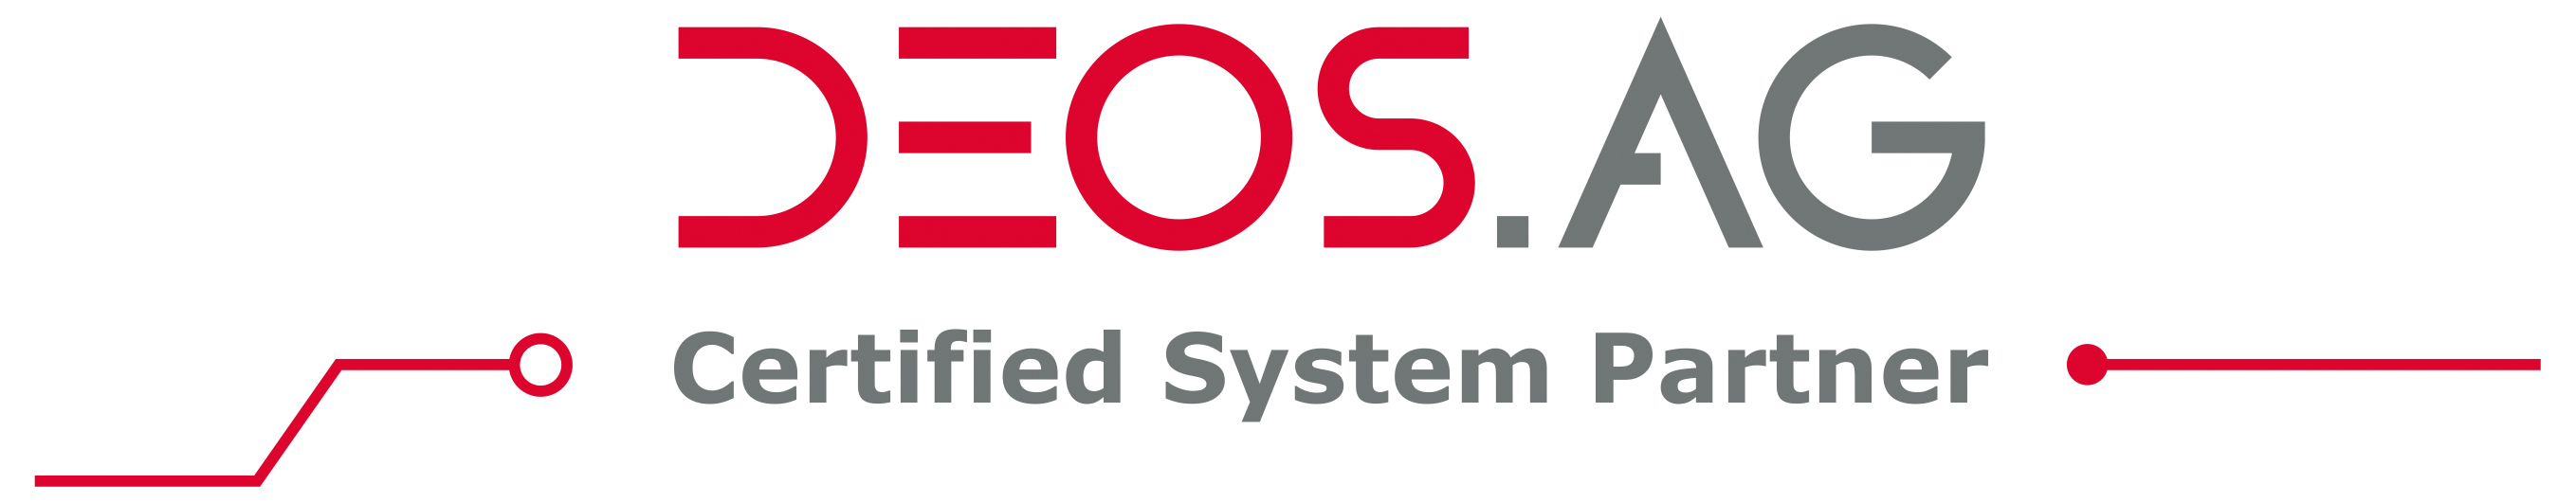 certified-systempartner-RGB-20140616